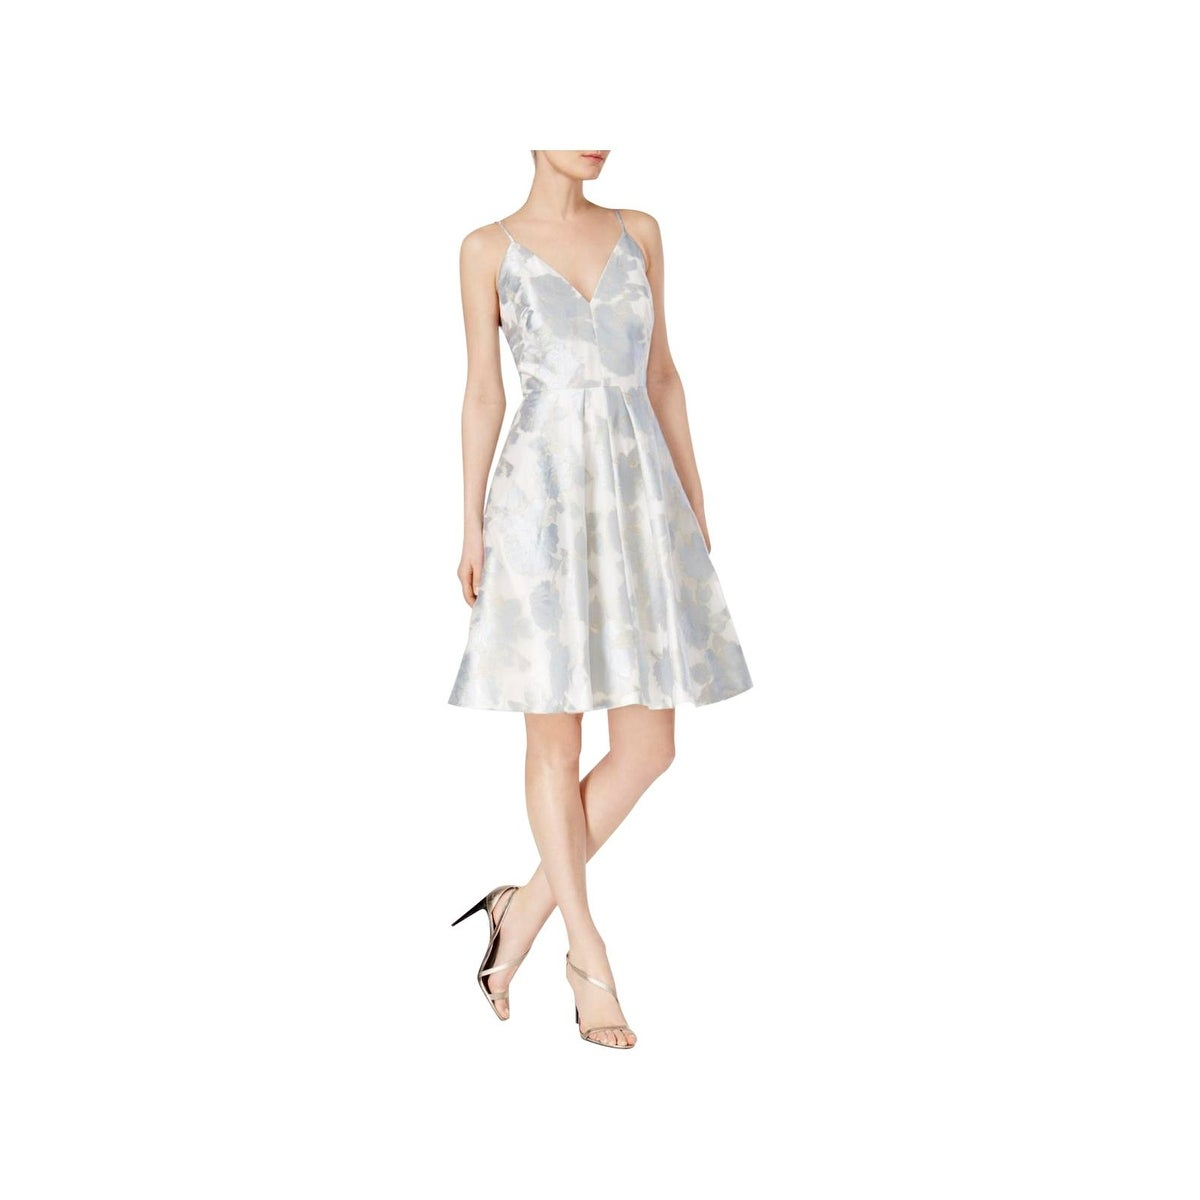 66a45b6fa1f4 Calvin Klein Dresses   Find Great Women's Clothing Deals Shopping at  Overstock